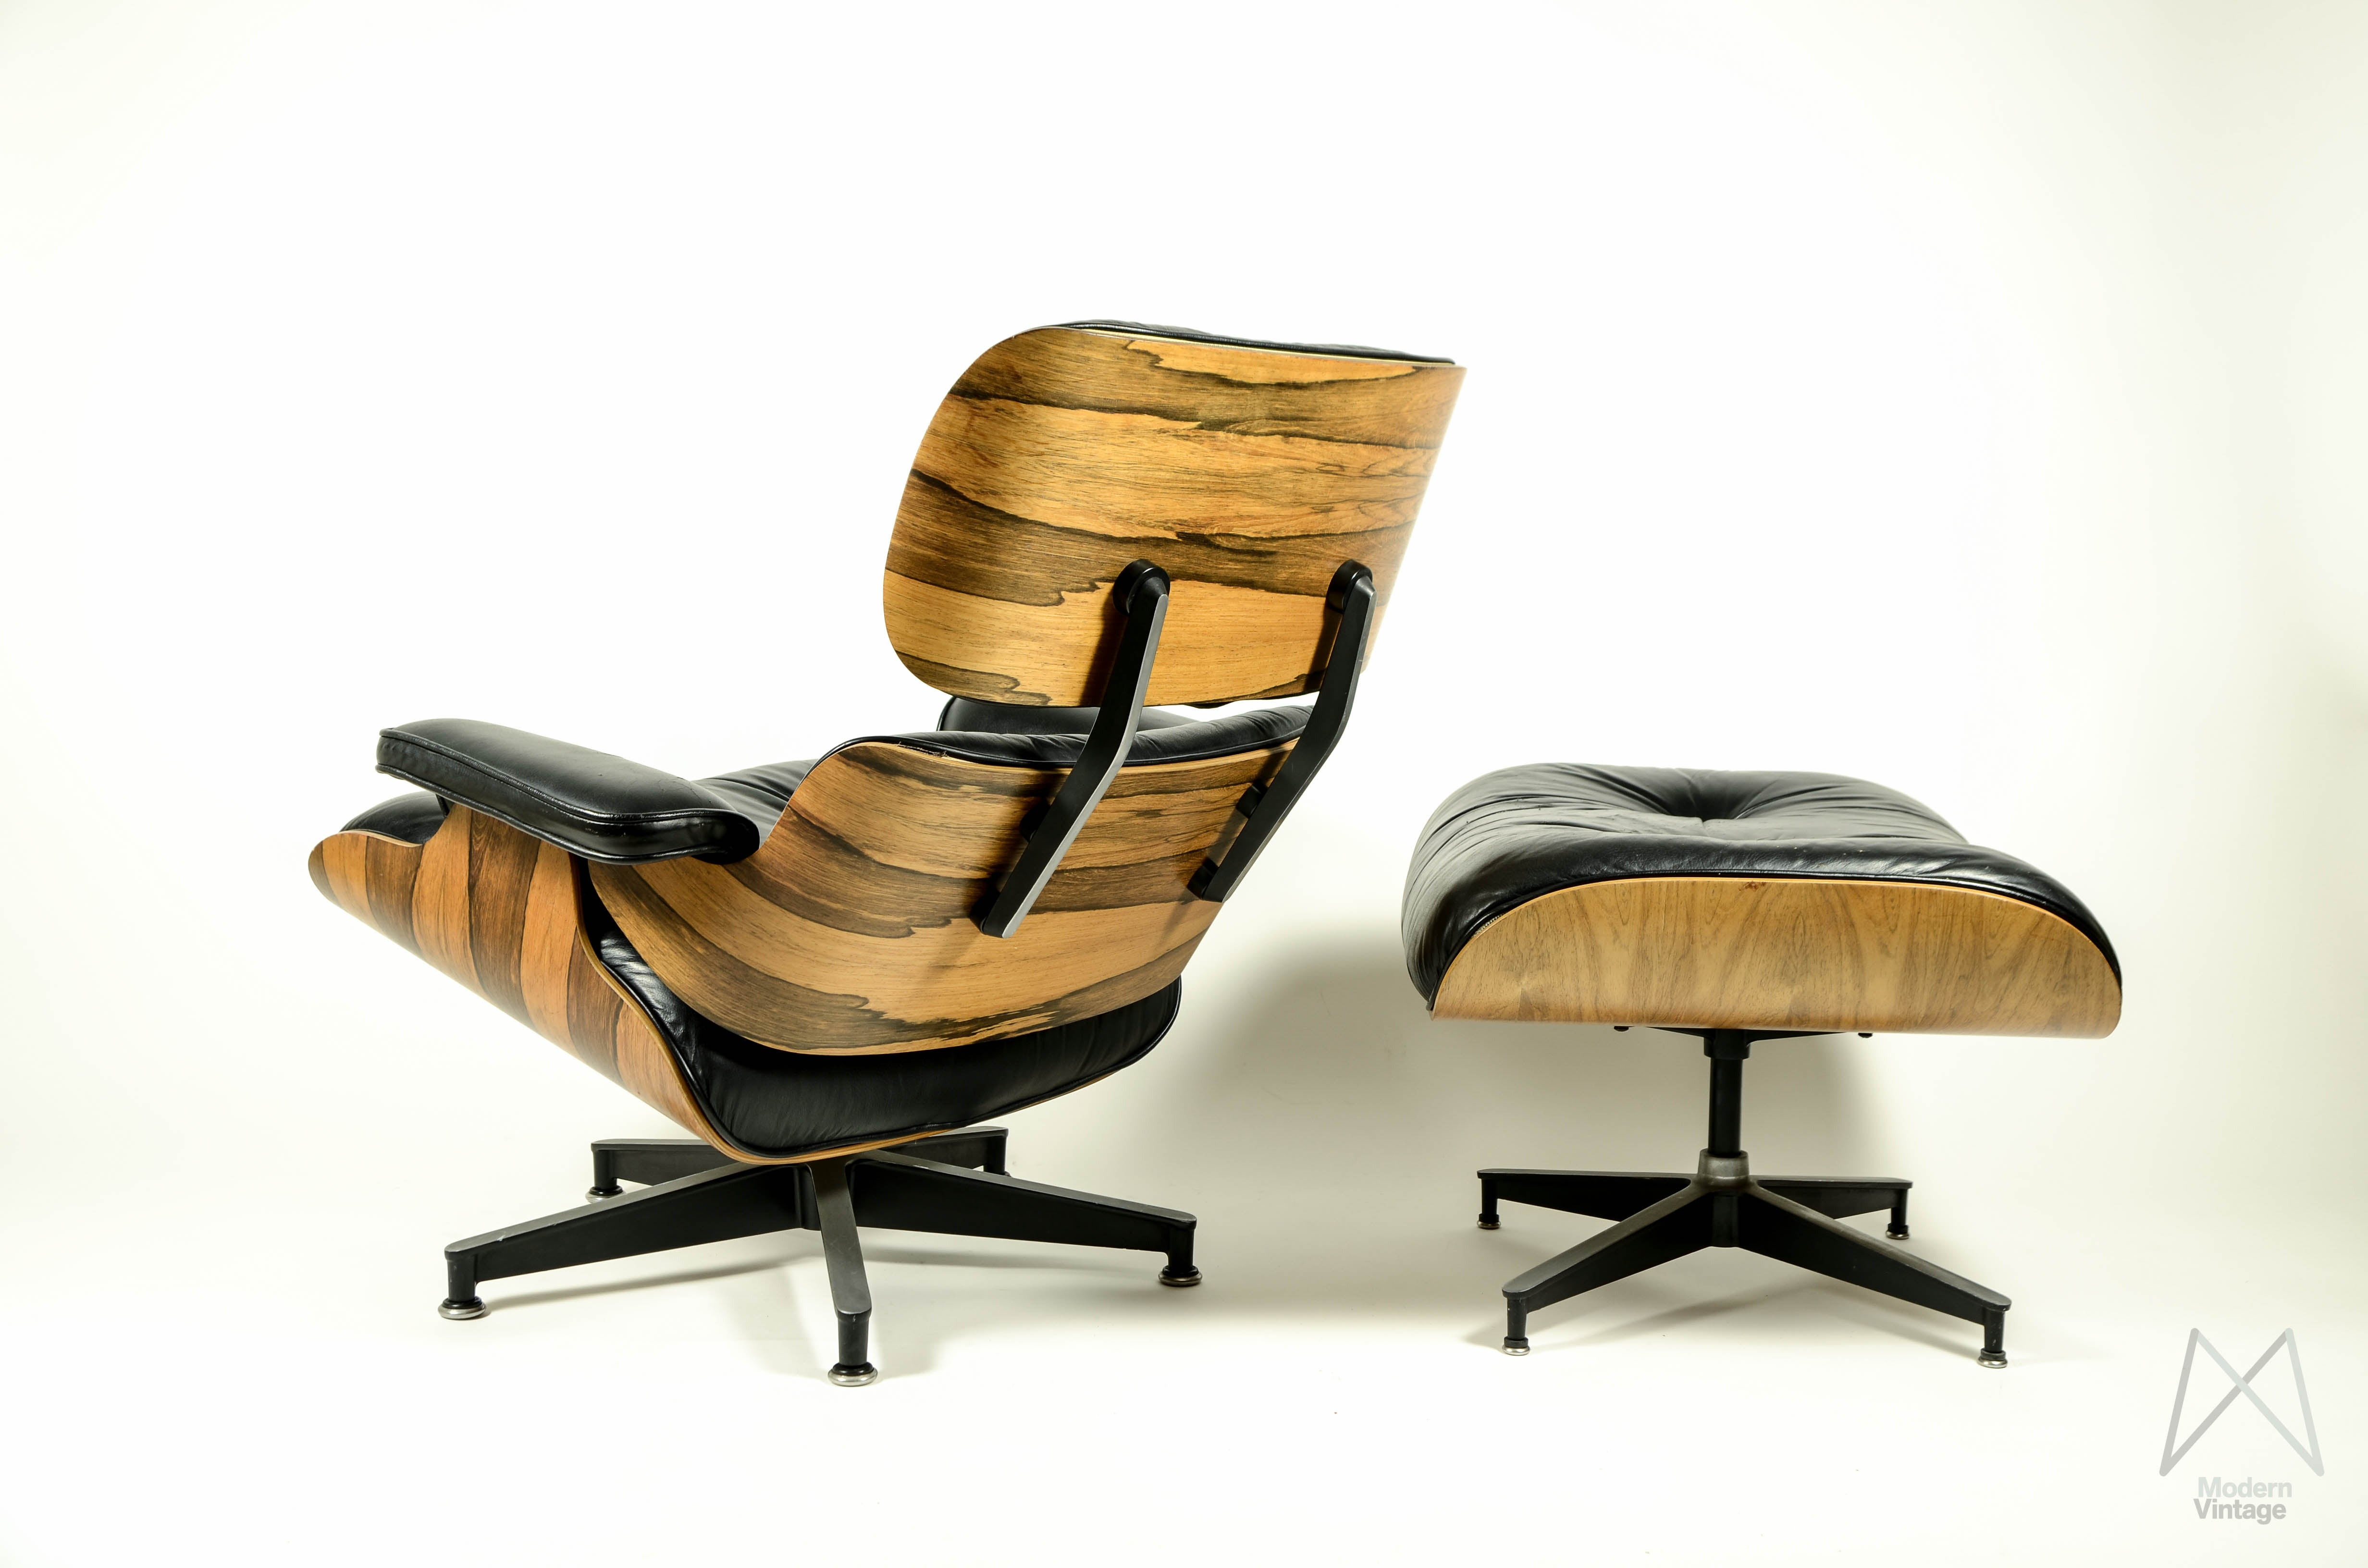 Charles Eames Stuhl Original Charles And Ray Eames 670 671 Rosewood Crazy Flame Lounge Chair Original Stol